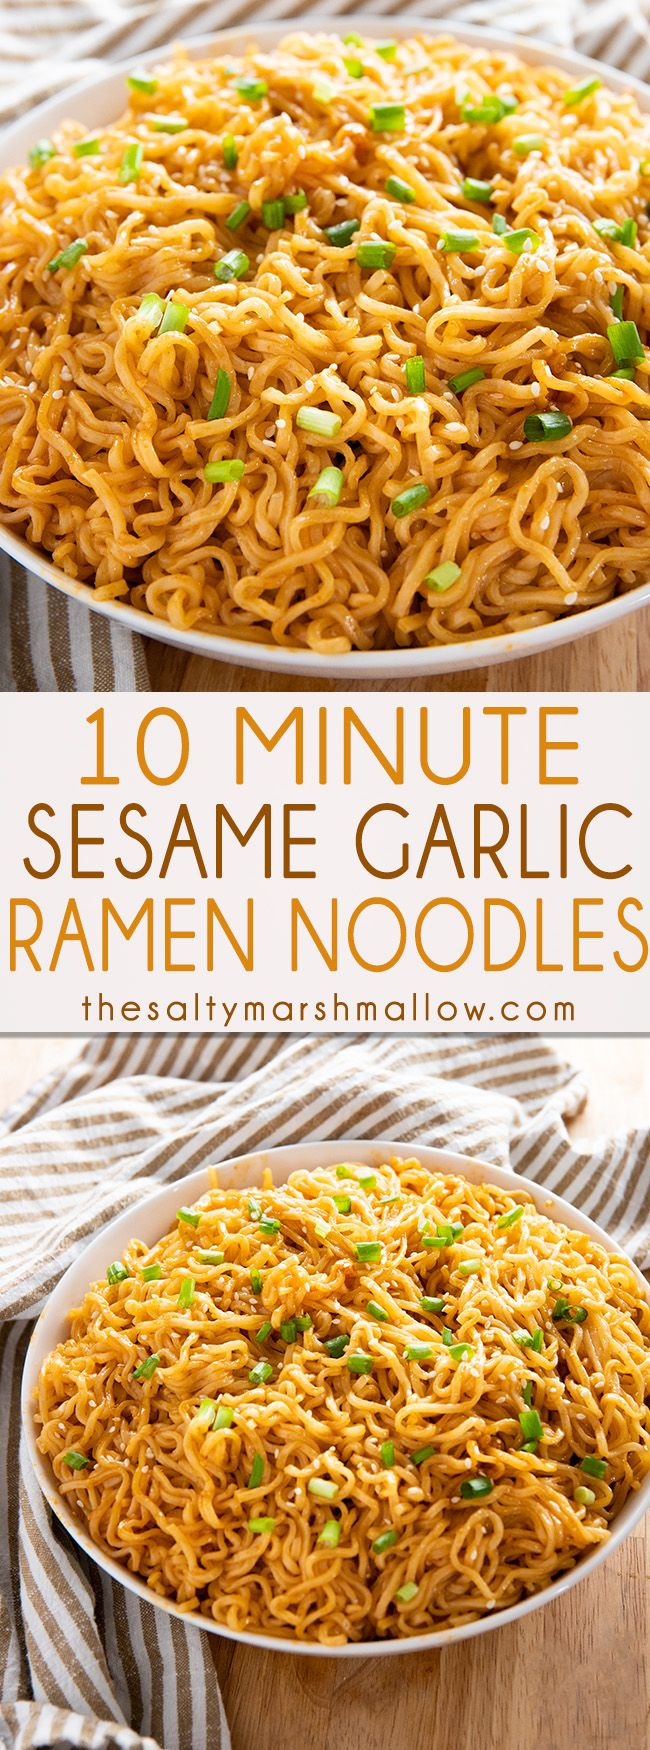 Photo of Sesame Garlic Ramen Noodles – The Salty Marshmallow